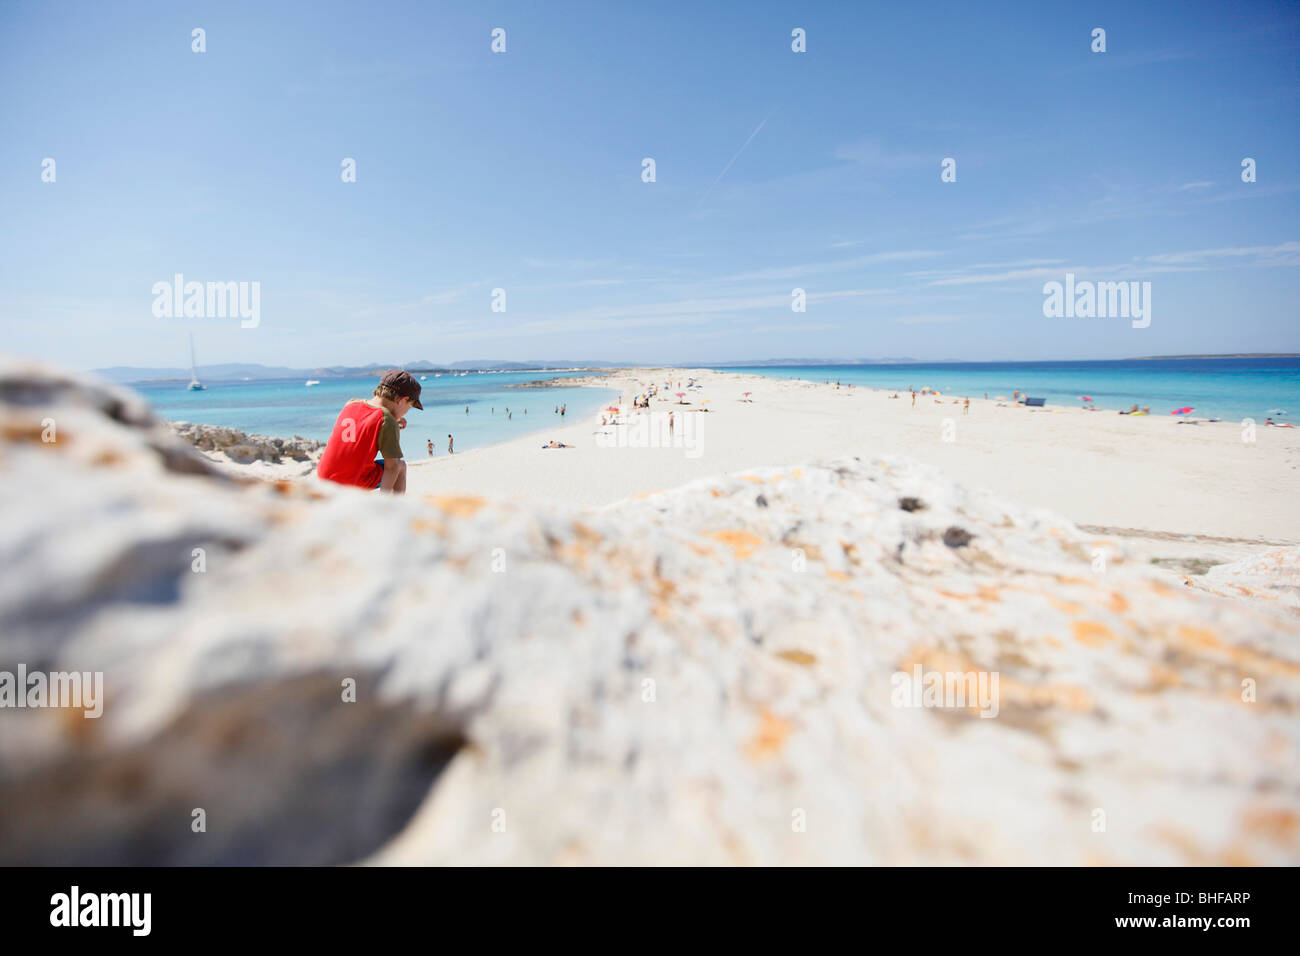 Boy on the beach, les Illetes und Llevant beach, Formentera, Balearic Islands, Spain - Stock Image